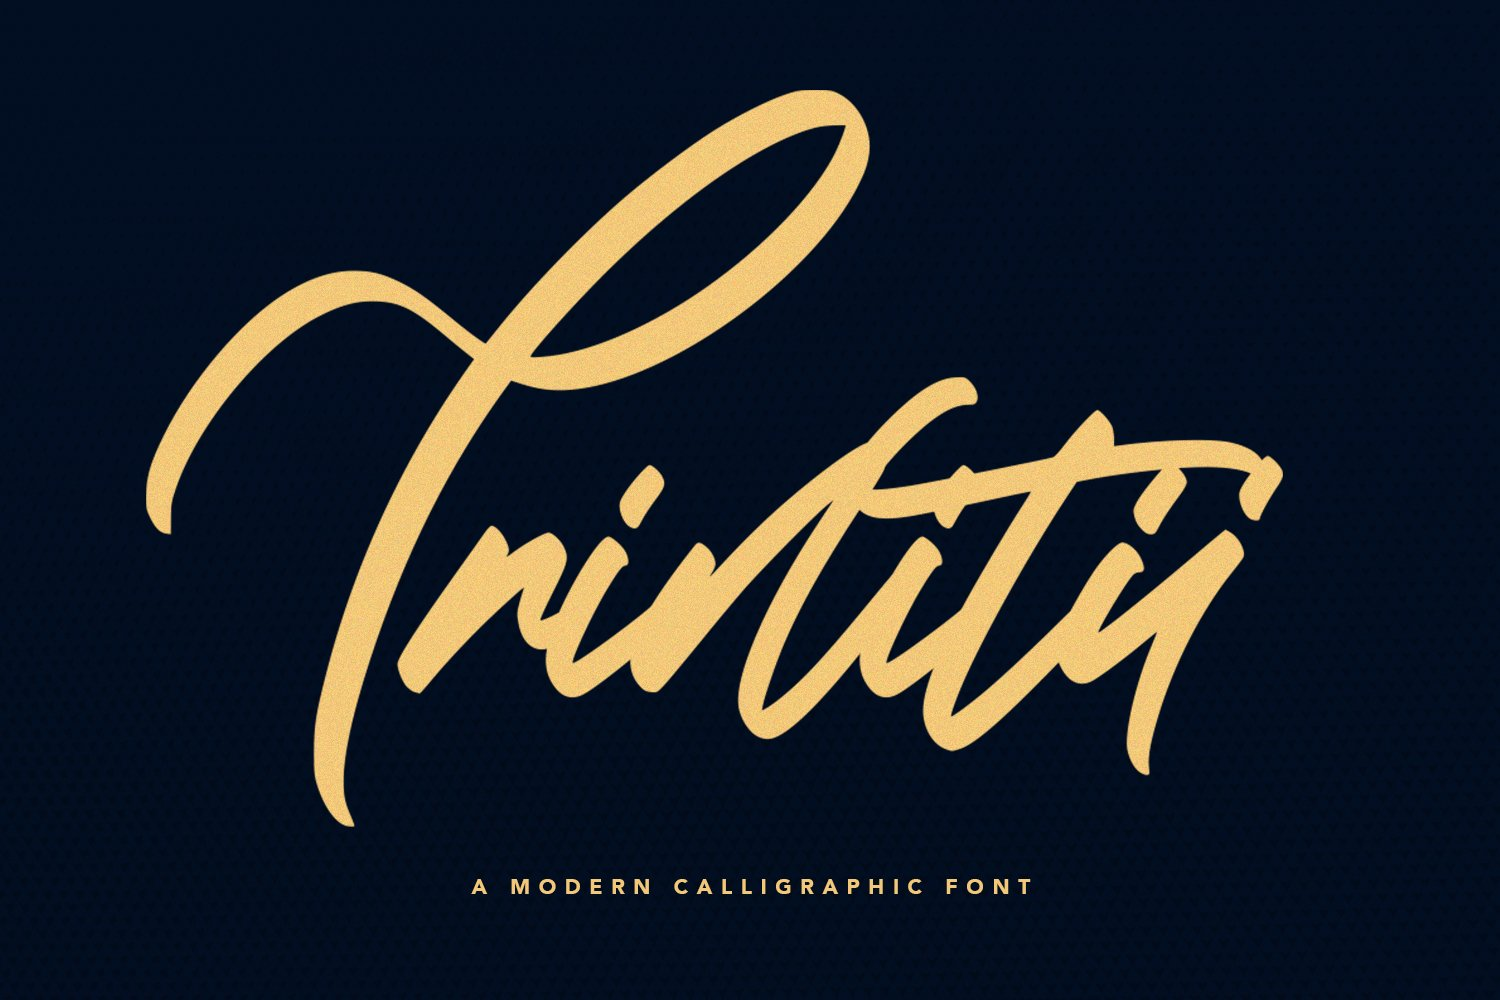 Trinitii - Modern Calligraphic Font example image 1